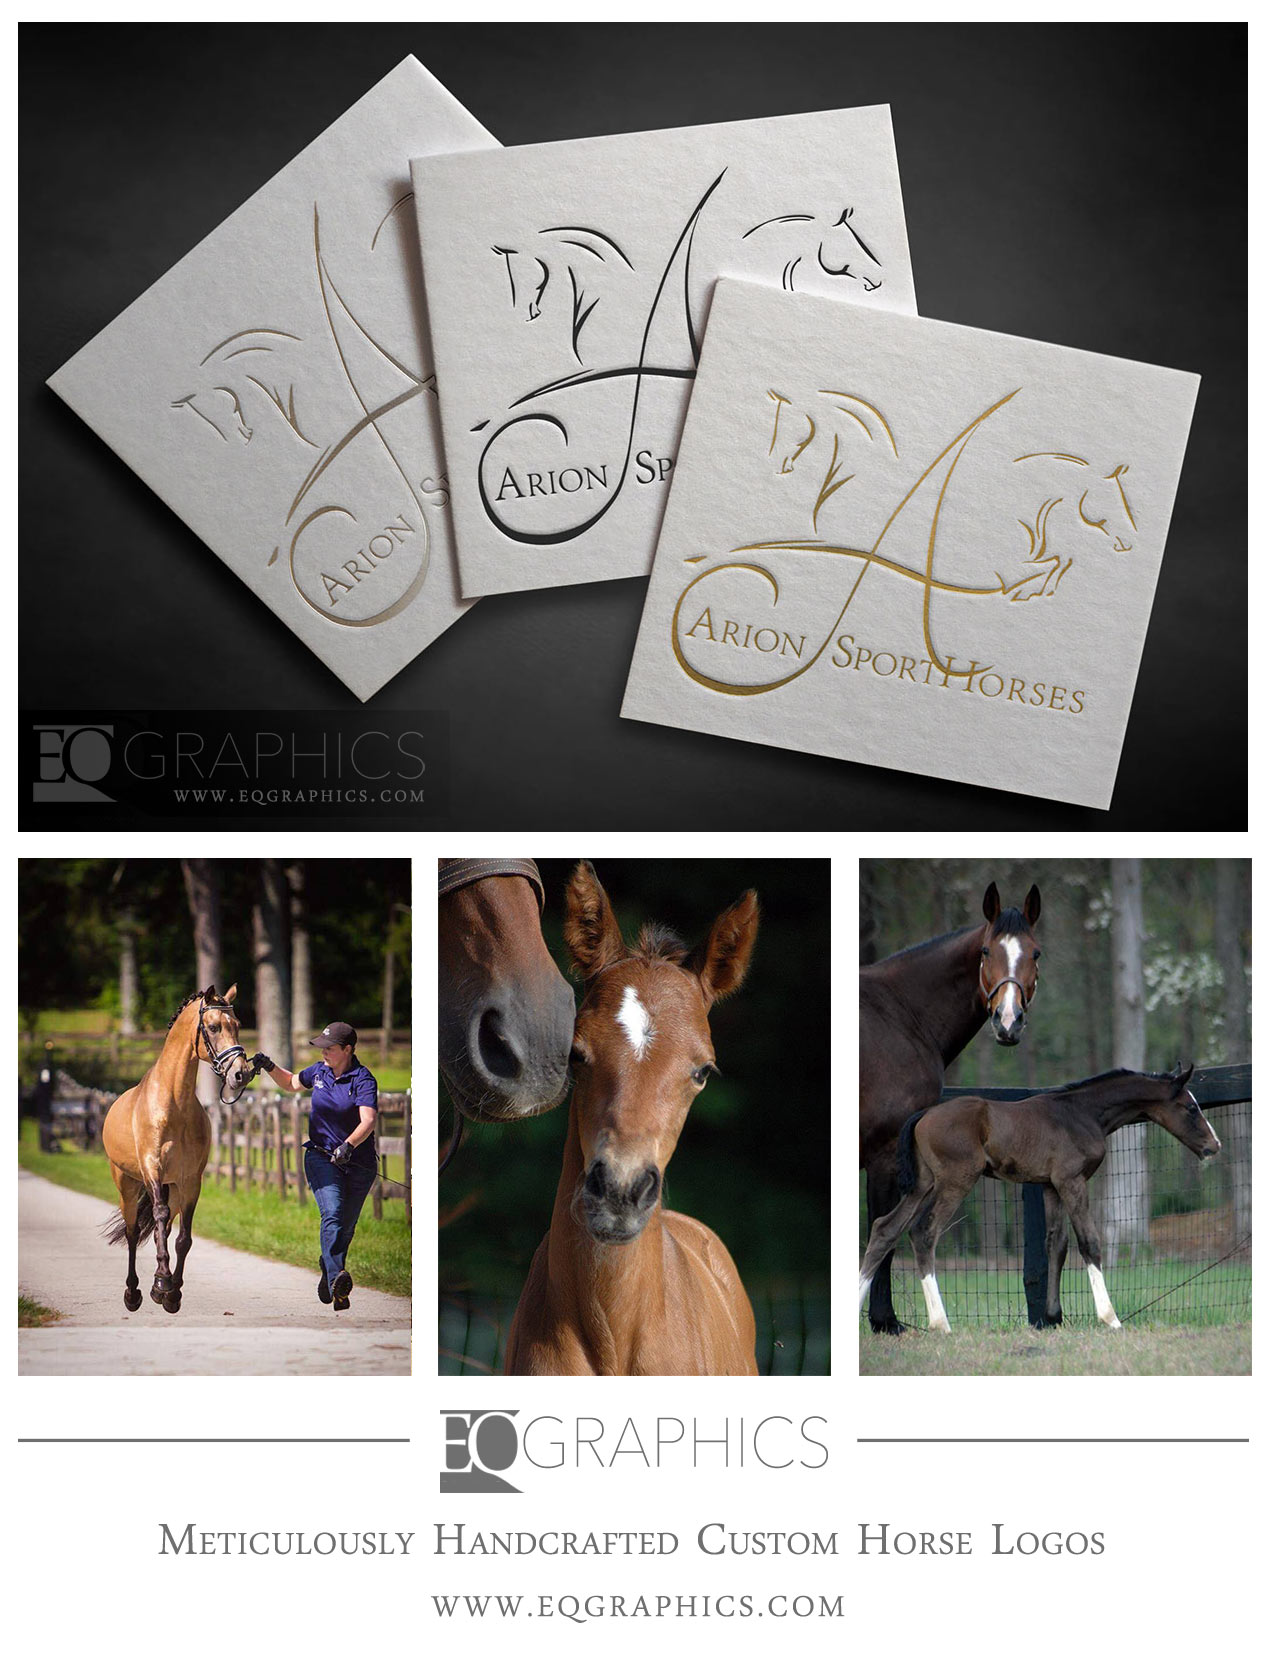 Arion Sporthorses Custom Horse Logo by EQ Graphics Equine Designer